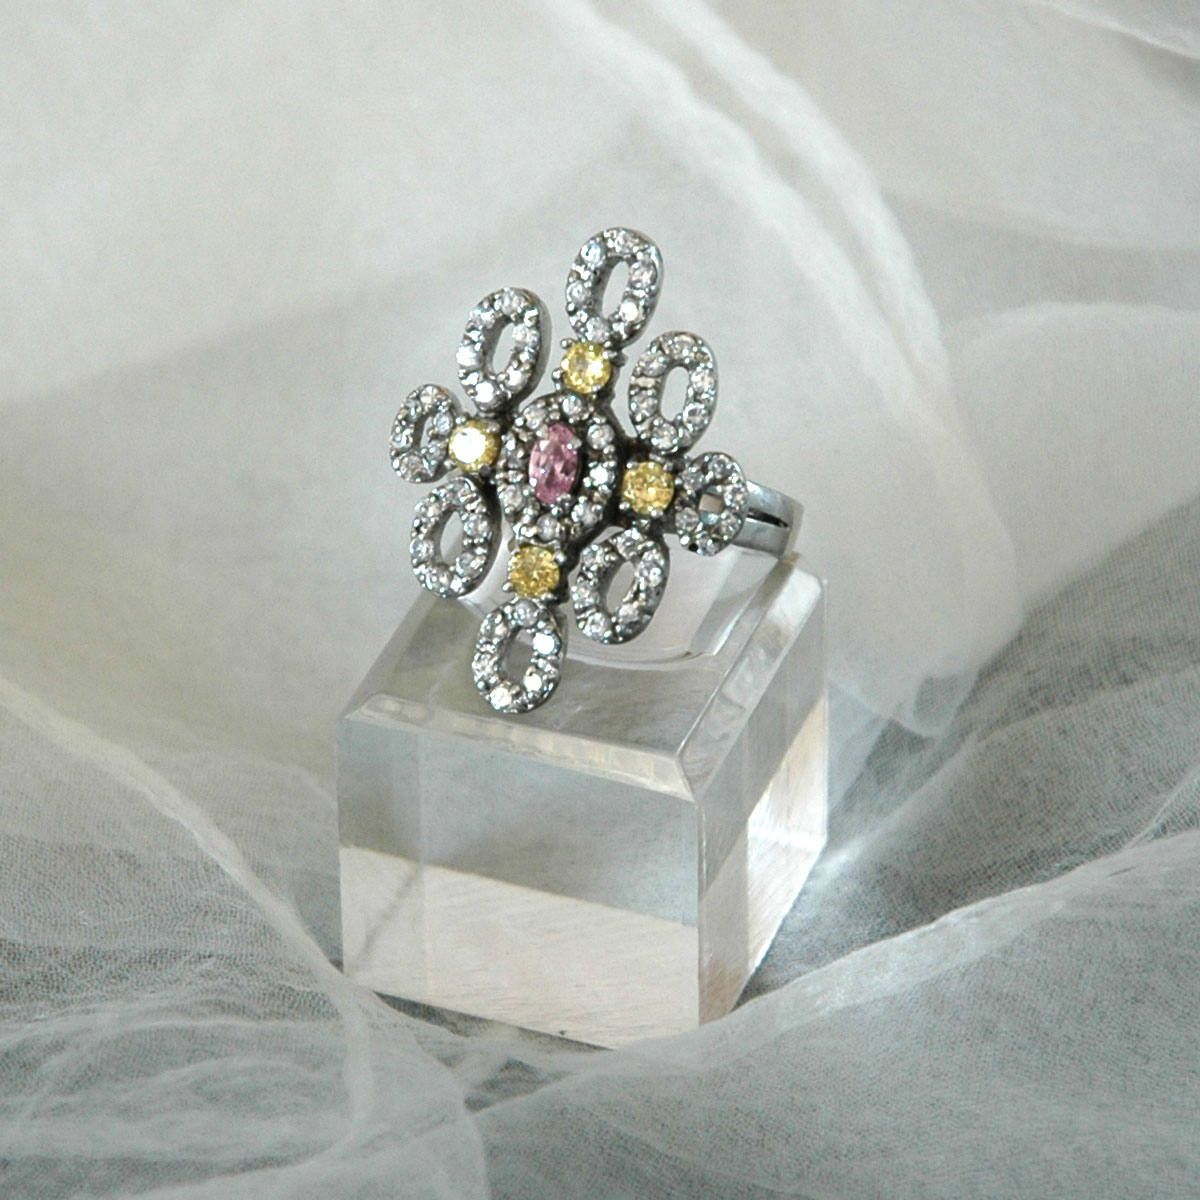 "CZ Statement Ring, Diamond Shape Flower, Sz 9.5, Vintage Bride, ""AF 925"" Sterling Silver, Pink Yellow Colorless Stones, Like New by VWayne on Etsy"